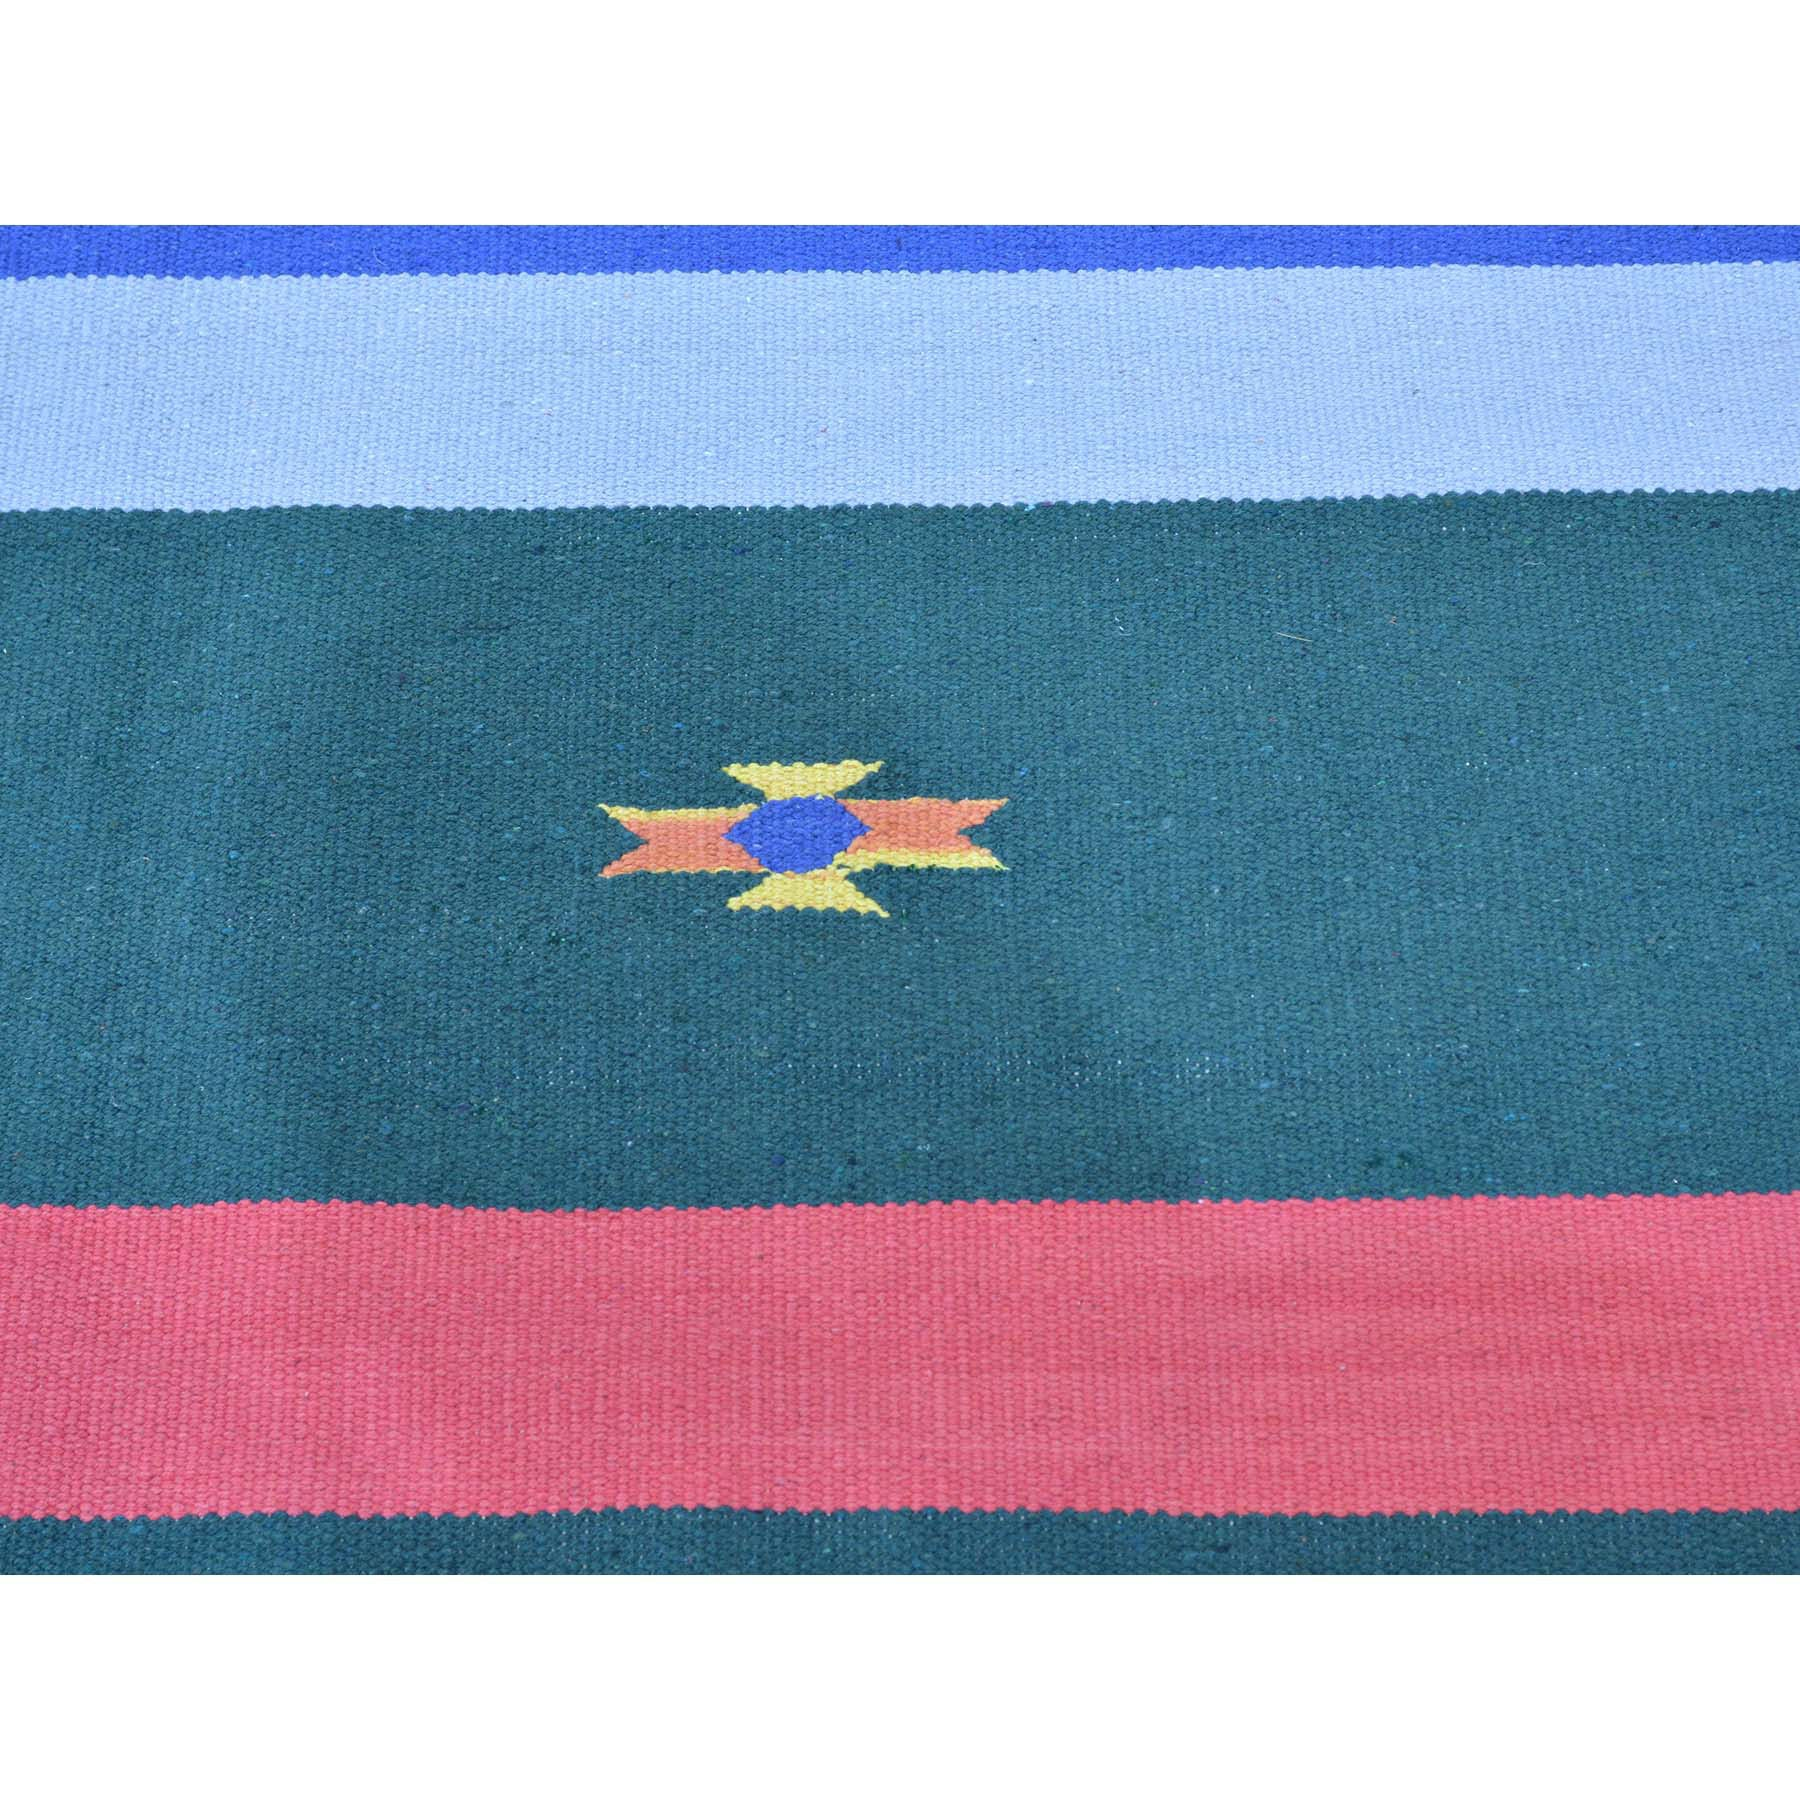 "Handmade Flat Weave Rectangle Rug > Design# SH26078 > Size: 8'-10"" x 12'-5"" [ONLINE ONLY]"